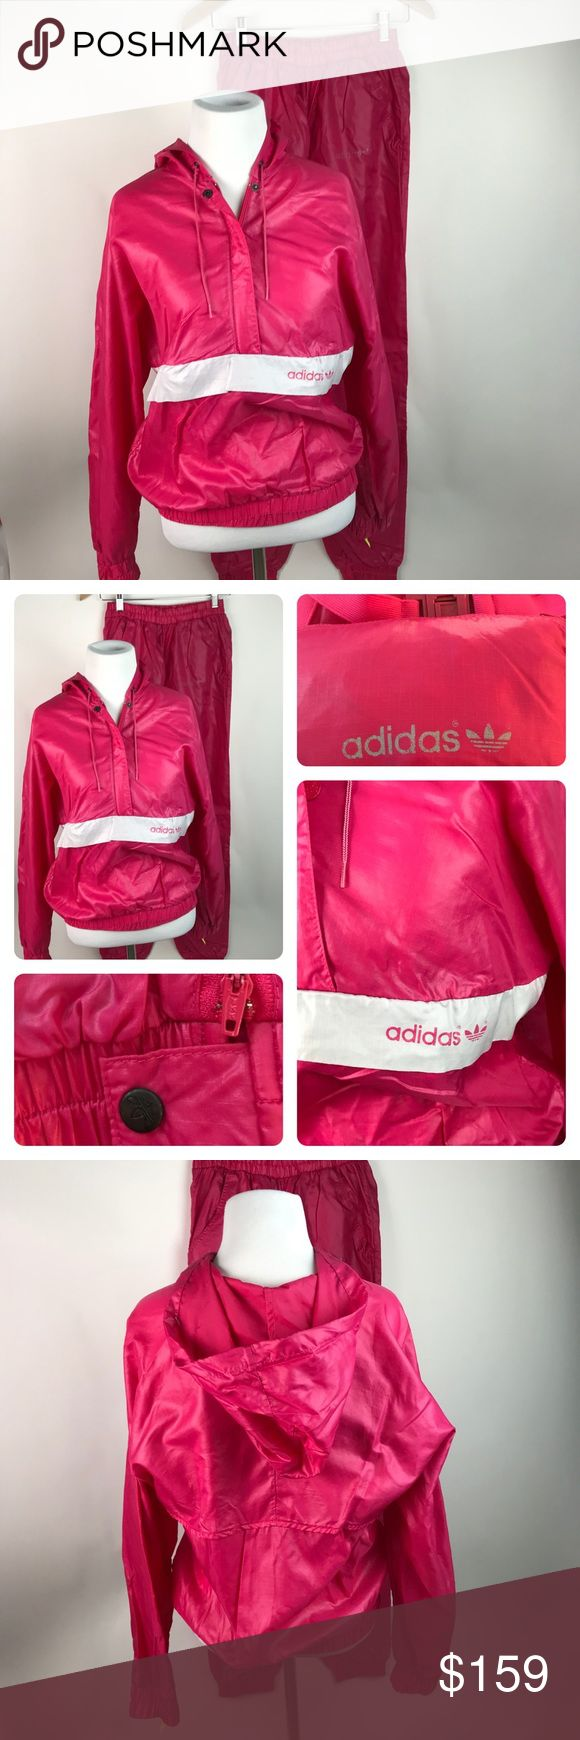 Vintage Adidas Tracksuit Women's Sz M AR57 EUC...minor fading of adidas logo on thigh of track pant only- all other logos intact. NO stains holes rips or pilling.  spectacular VINTAGE ADIDAS TRACKSUIT for women! This listing includes the popover hooded windbreaker which folds into and out of a Belted fanny pack that fastens around waist for travel, etc. when Jacket is in use, the fanny pack and strap nestled into the jacket's front pocket. The pants feature a traditional elastic waistband…